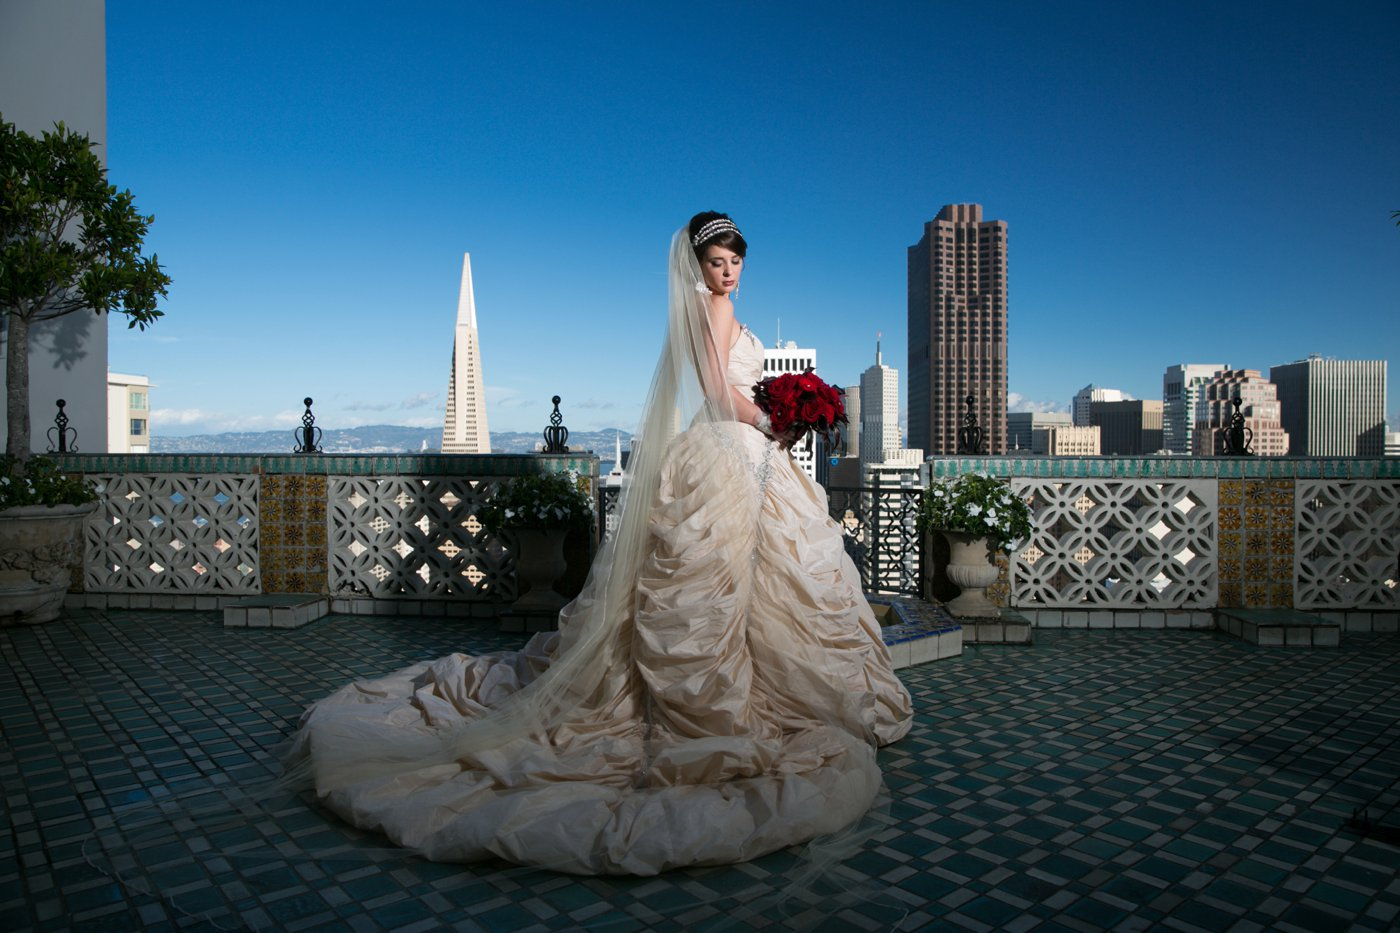 San francisco wedding venues images wedding dress for Wedding dresses san francisco